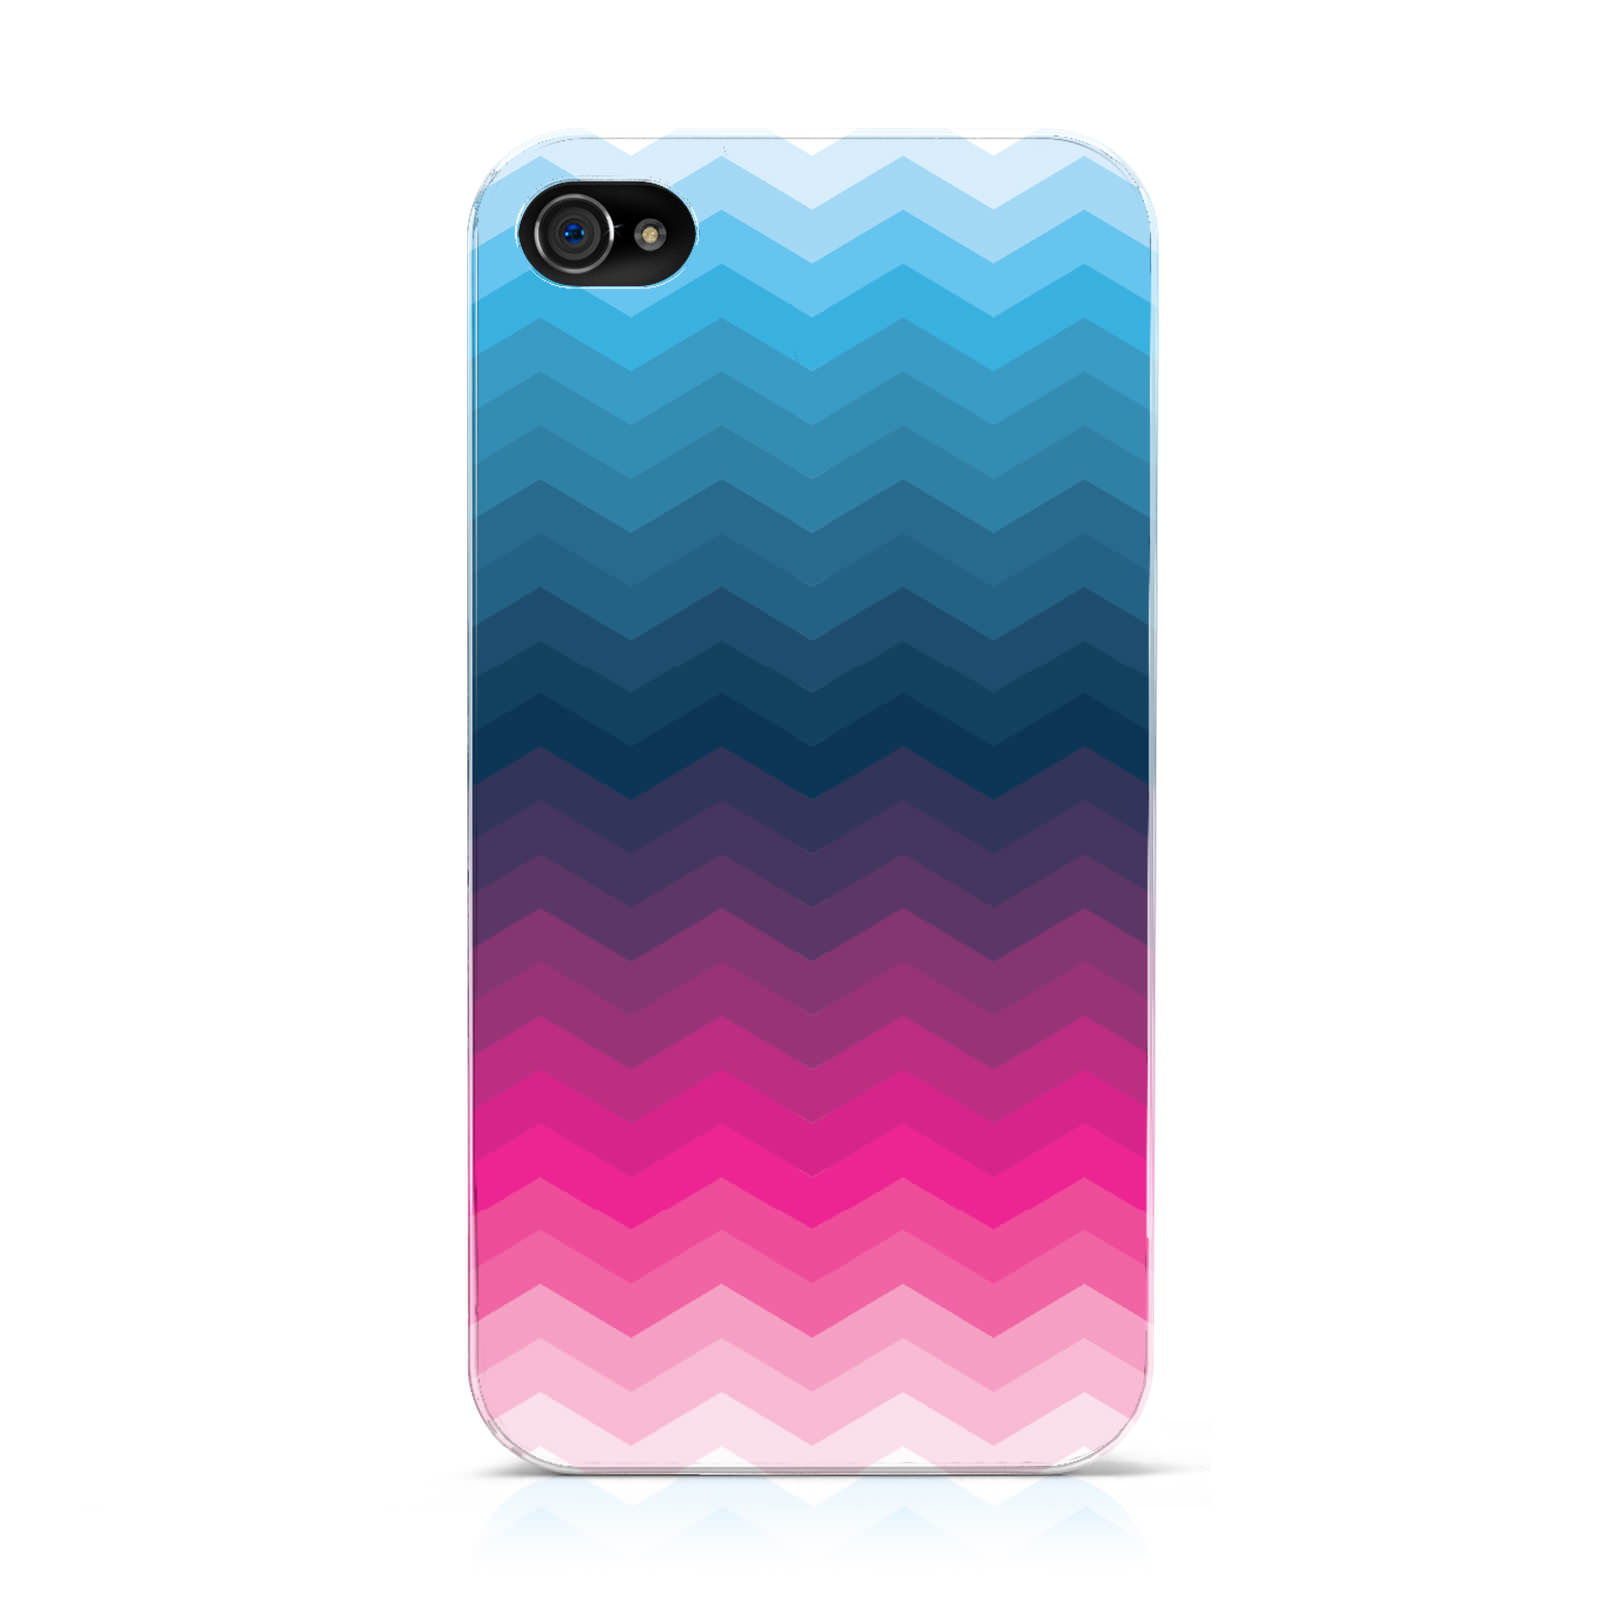 dyefor-OMBRE-Chevron-Azul-amp-Rosa-Funda-para-Apple-iPhone-telefonos-moviles